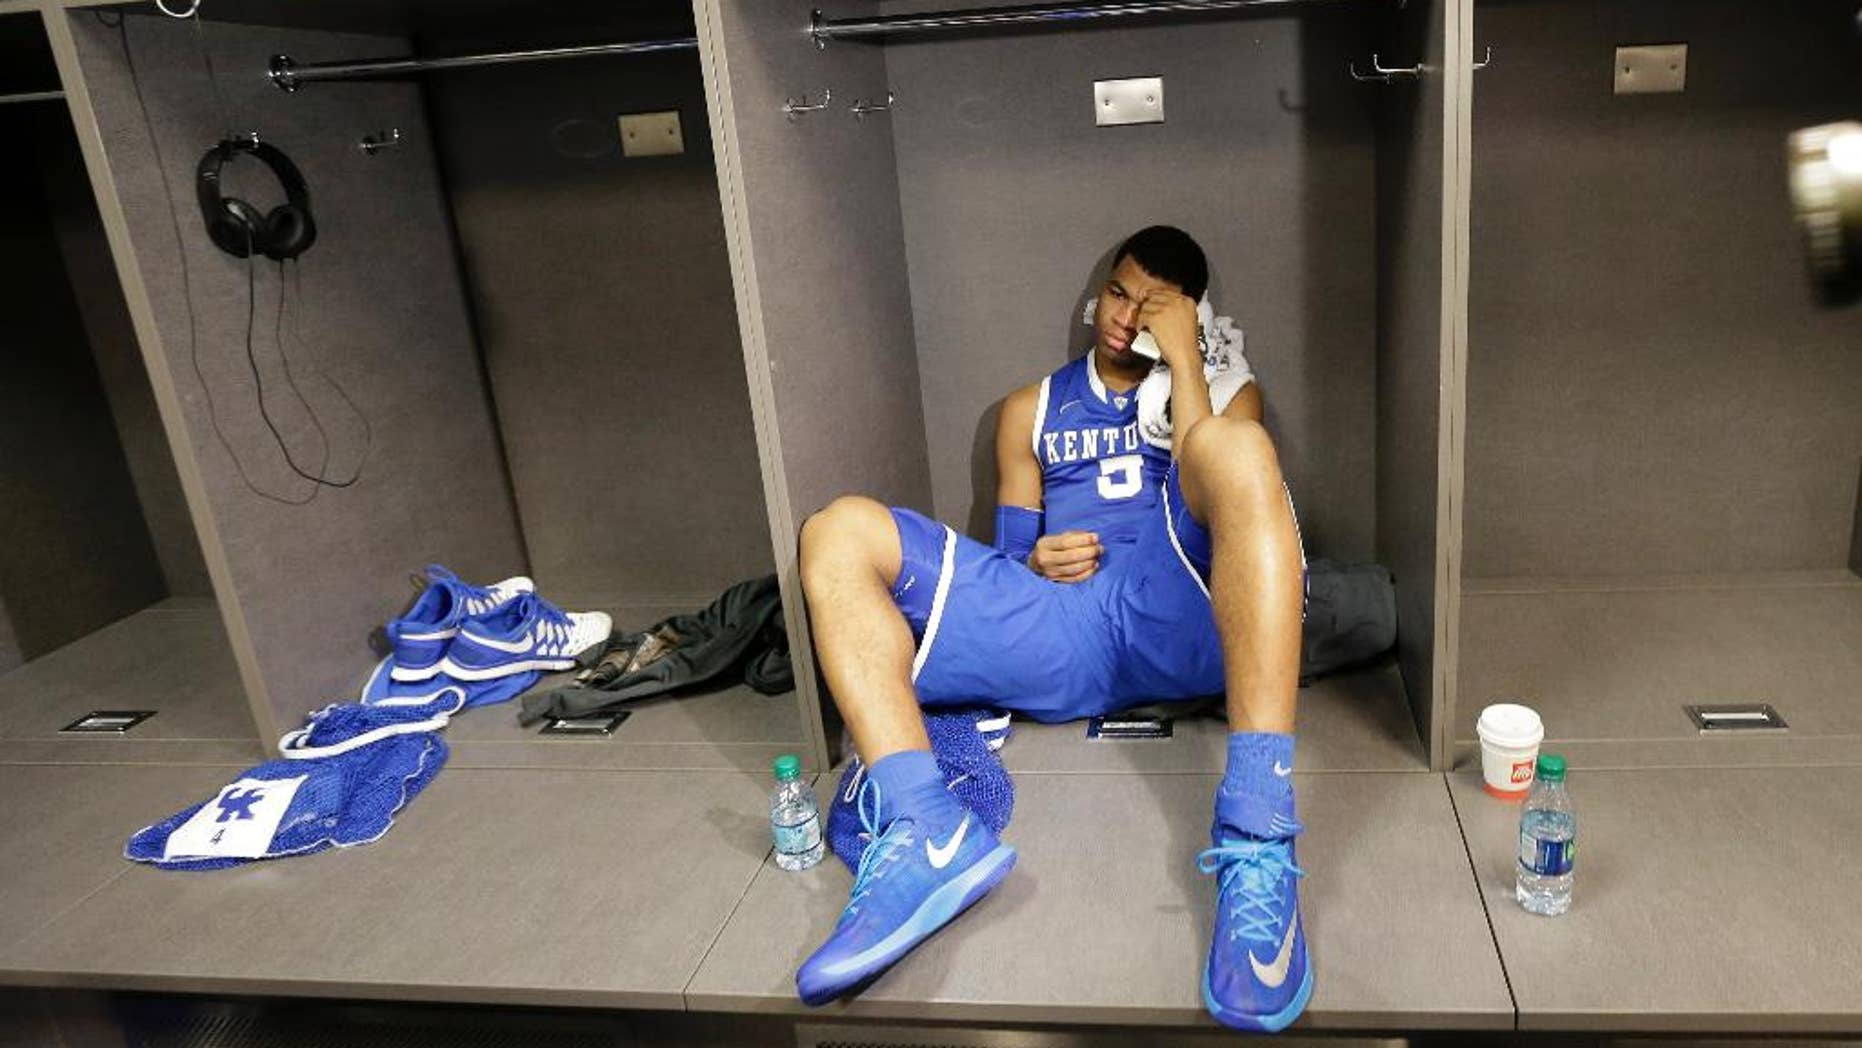 Kentucky guard Andrew Harrison sits in the locker room after his team's 60-54 loss to Connecticut in the NCAA Final Four tournament college basketball championship game Monday, April 7, 2014, in Arlington, Texas. (AP Photo/Eric Gay)